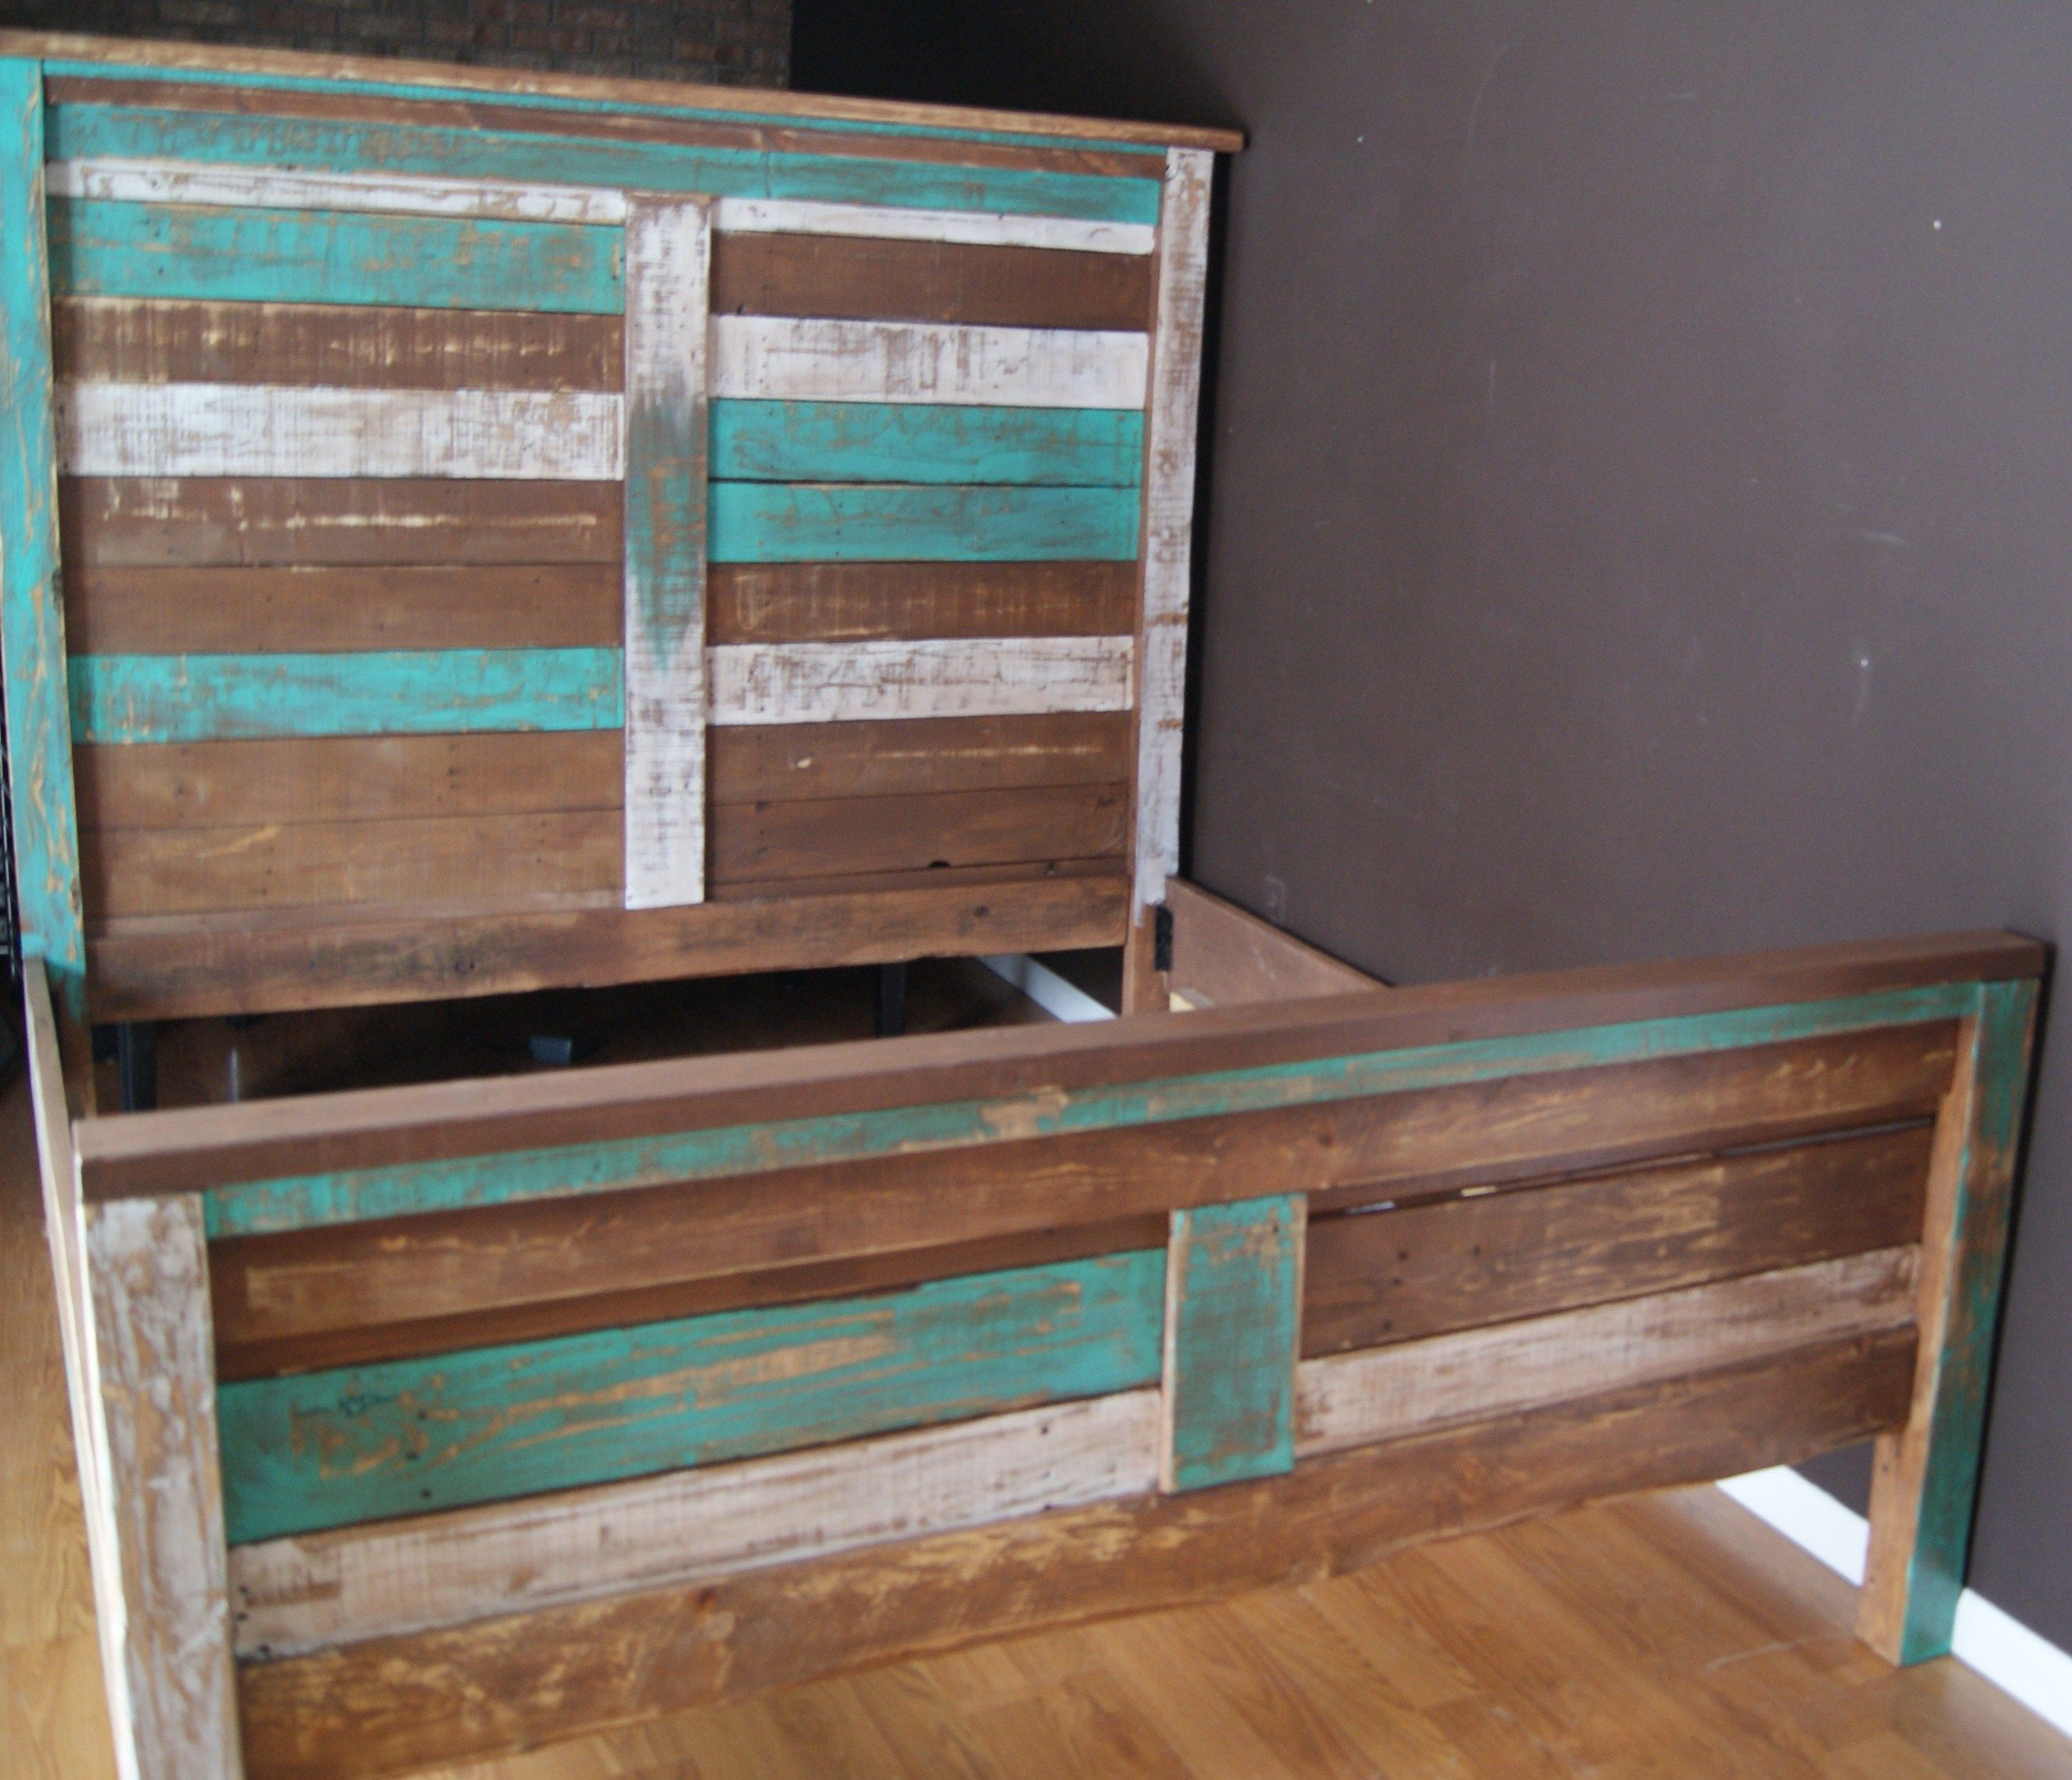 Shabby Chic Reclaimed Queen Bed Set Rustic Headboard Foot Board And Rails Reclaimed Queen Bed Distressed With Teal And White Rustic Headboard Shabby Chic Bedrooms Queen Bedding Sets